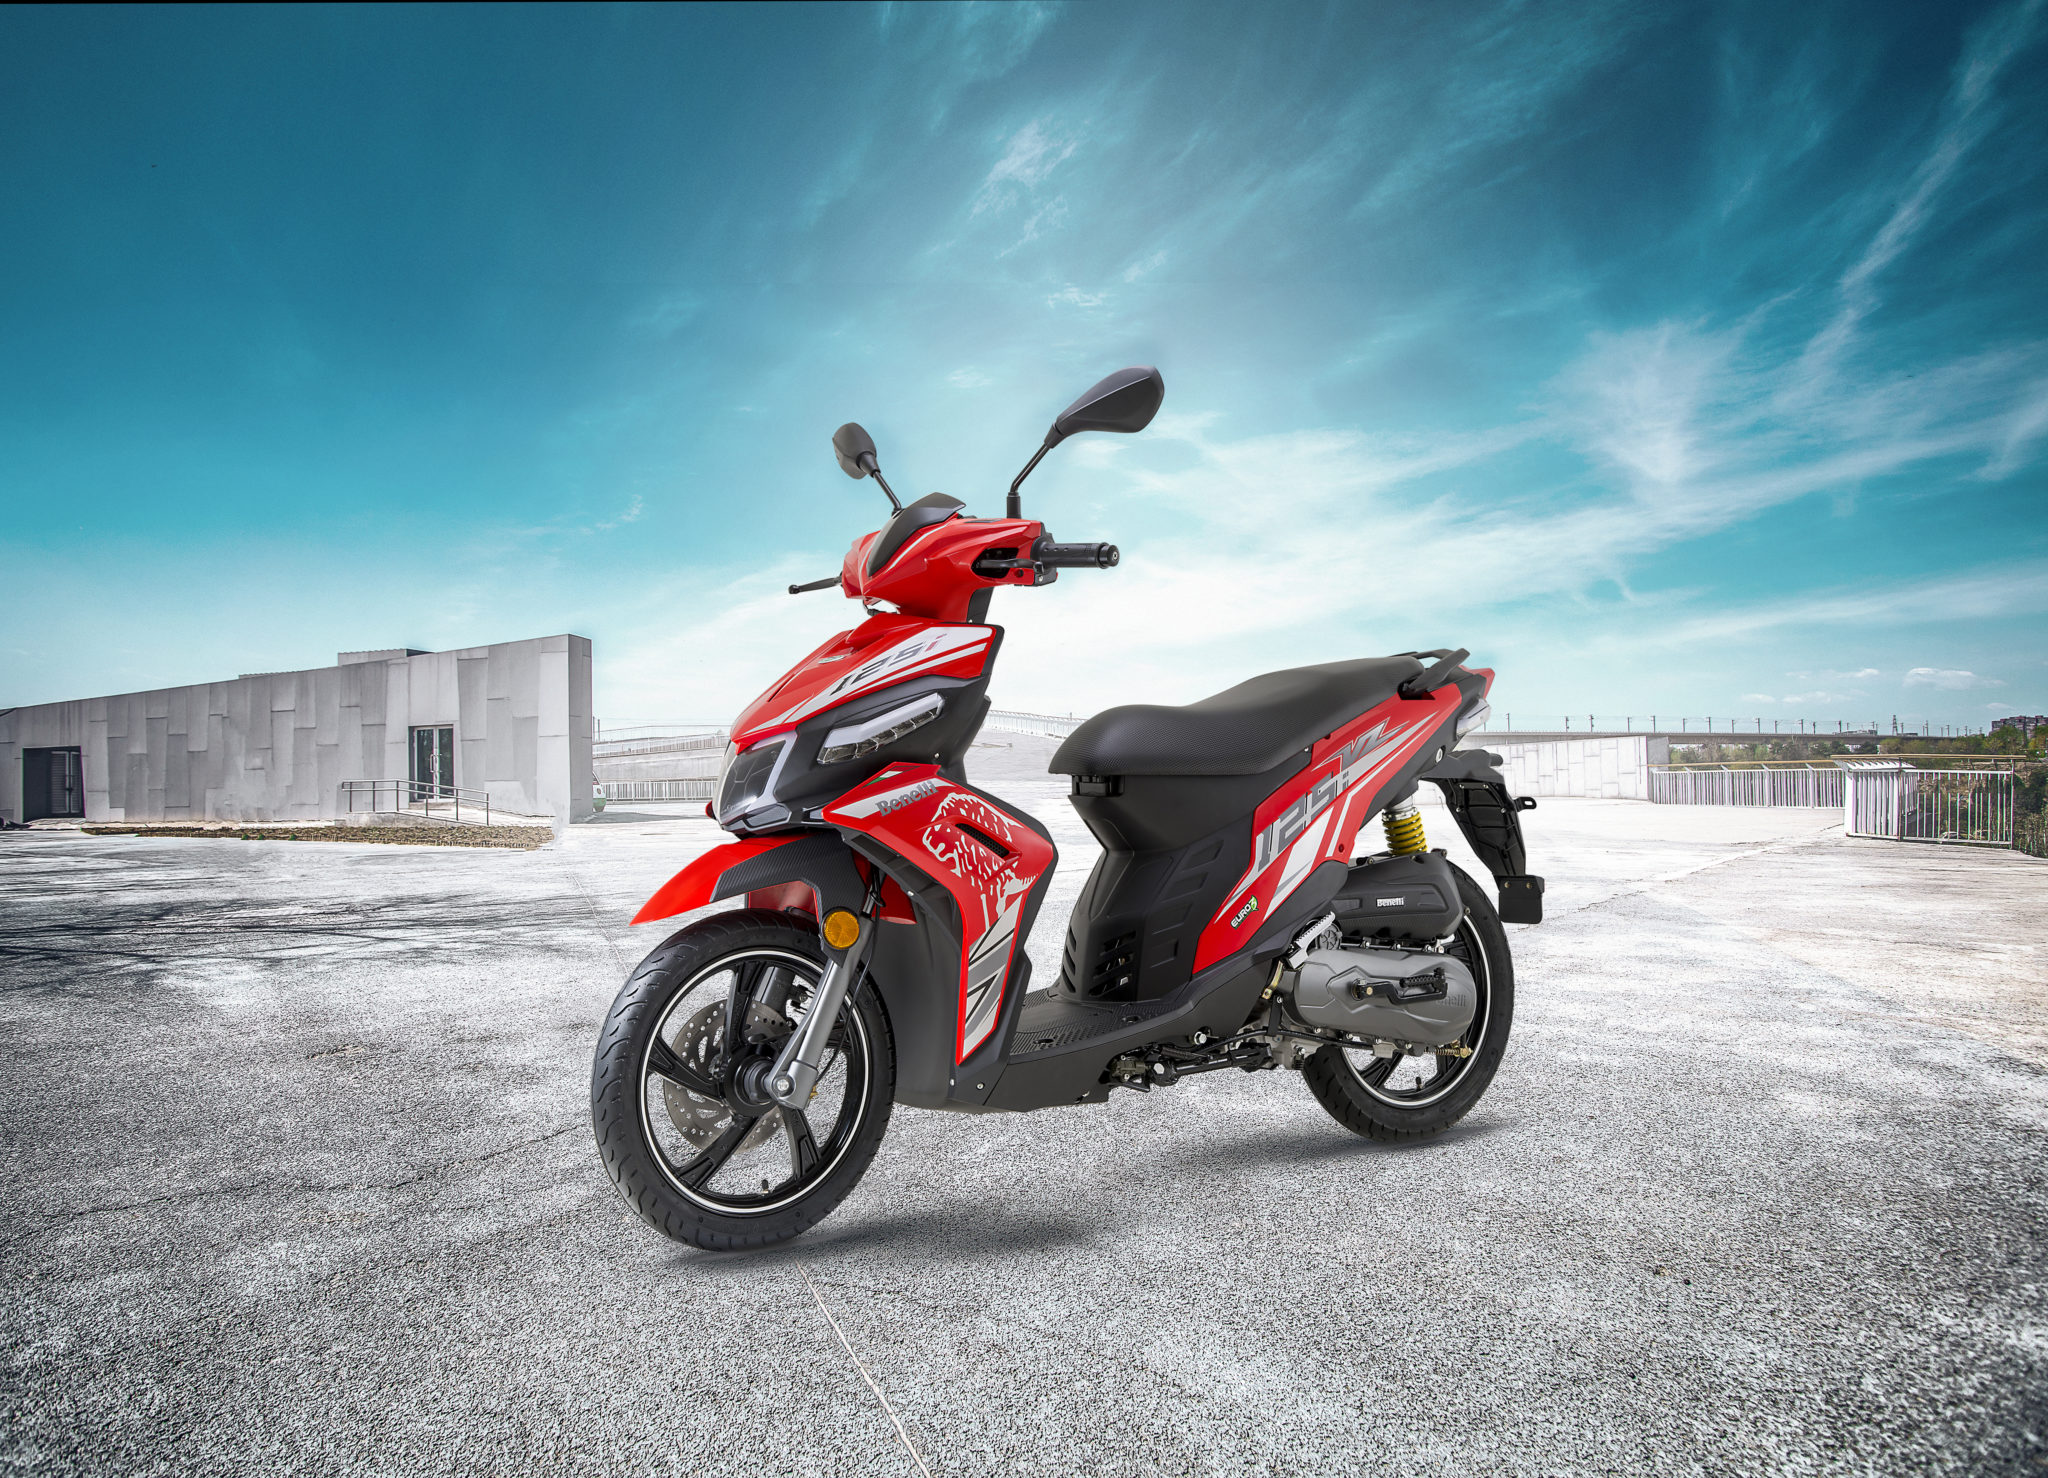 Benelli Malaysia enters the scooter world with the VZ125i